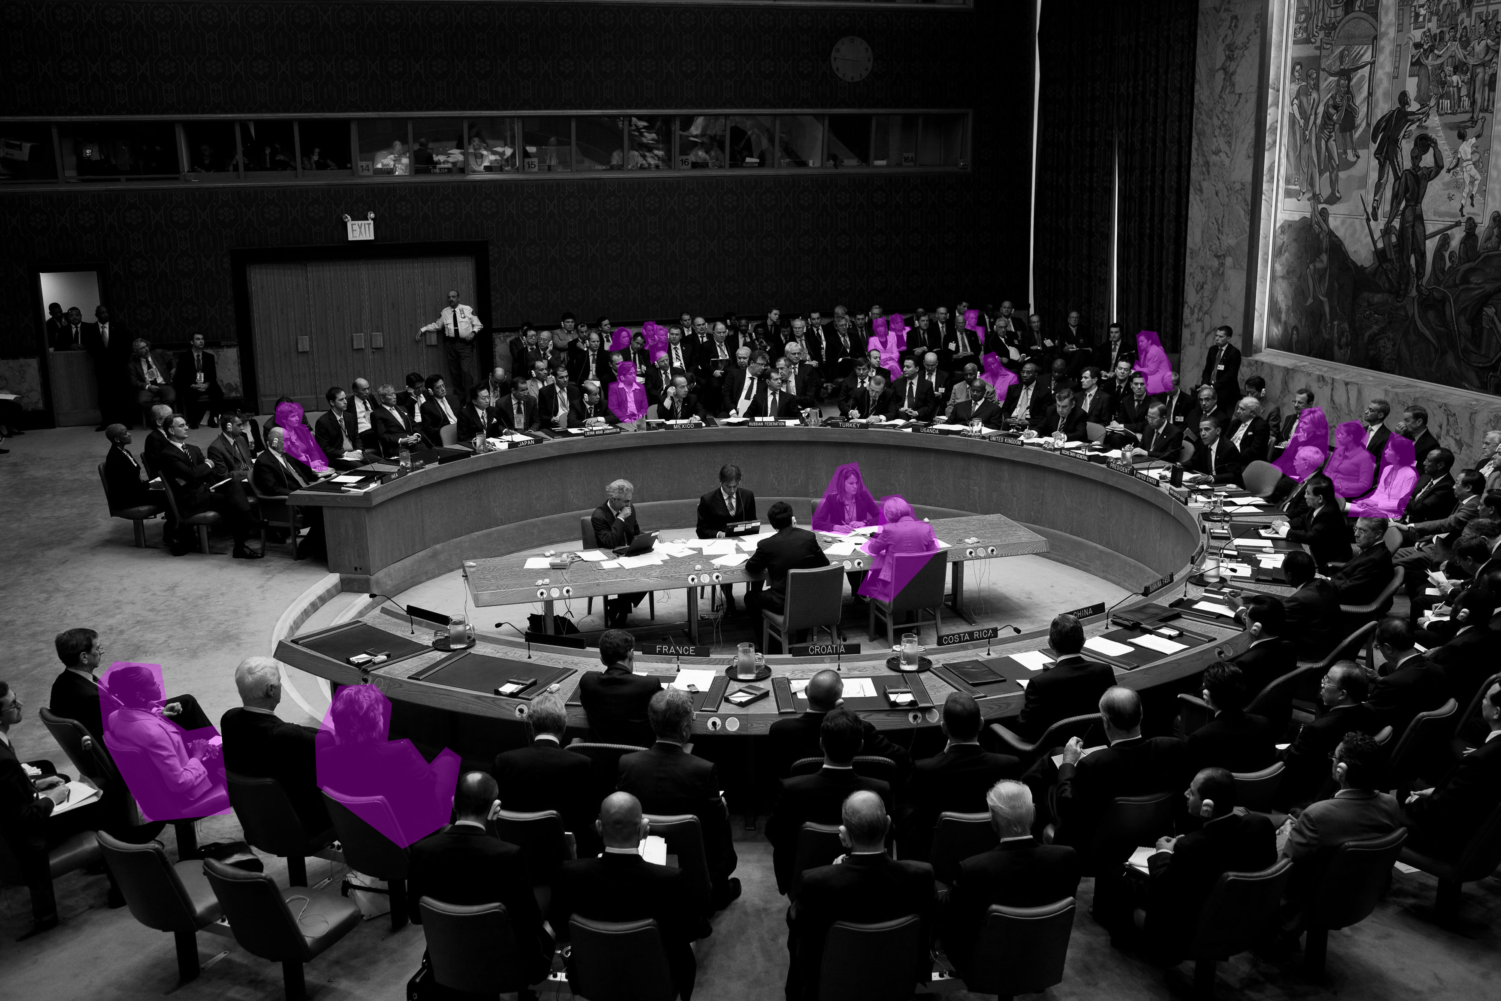 At a 2009 United Nations Security Council meeting, the ratio of women to men is drastically different. (Pete Souza / Wikimedia Commons / Public Domain).